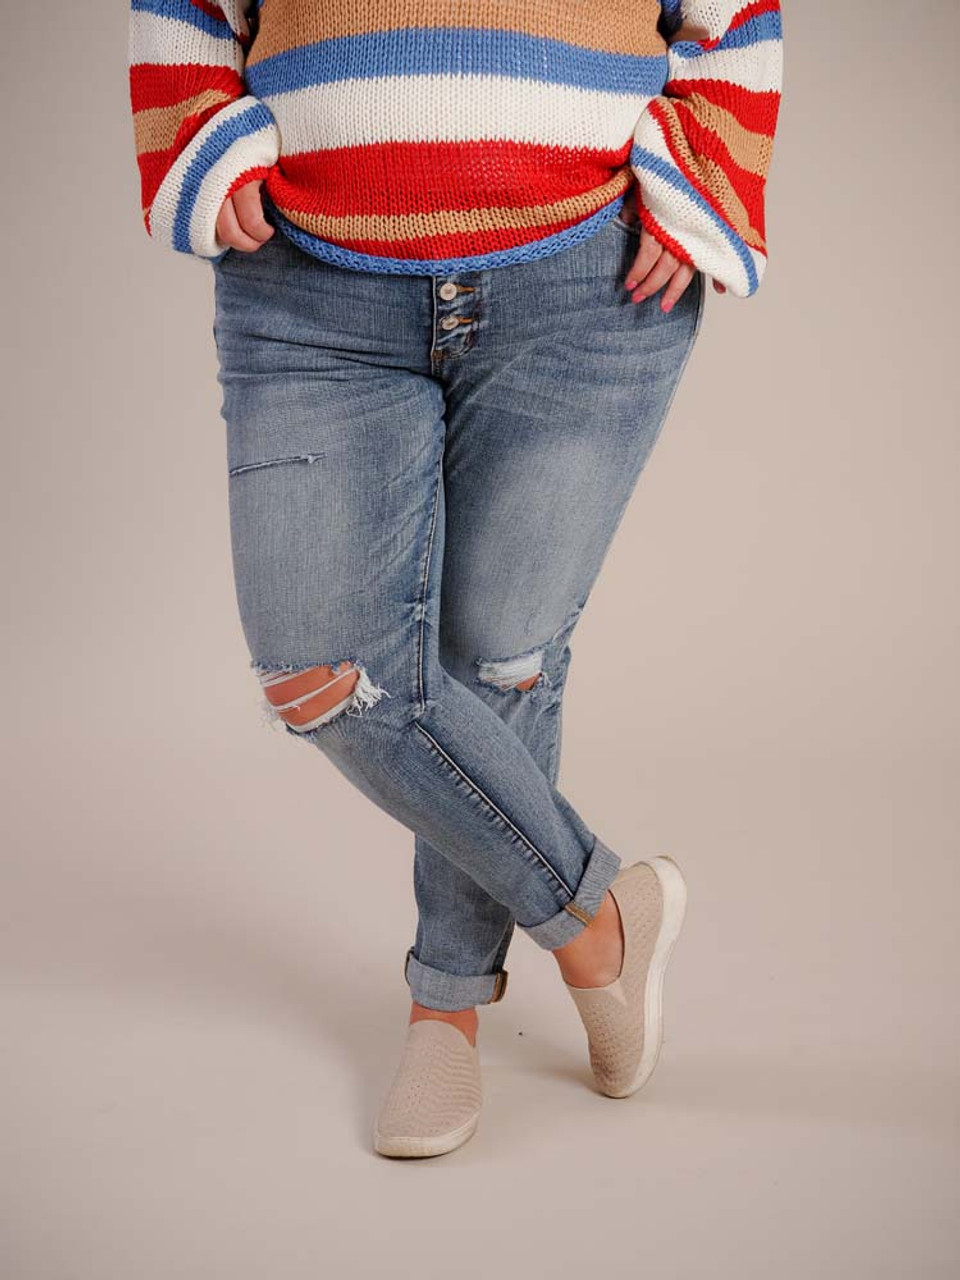 Medium blue denim jeans with a laid back worn-in look. Front and back pockets, 5 button fly, torn detail on right thigh and frayed knees